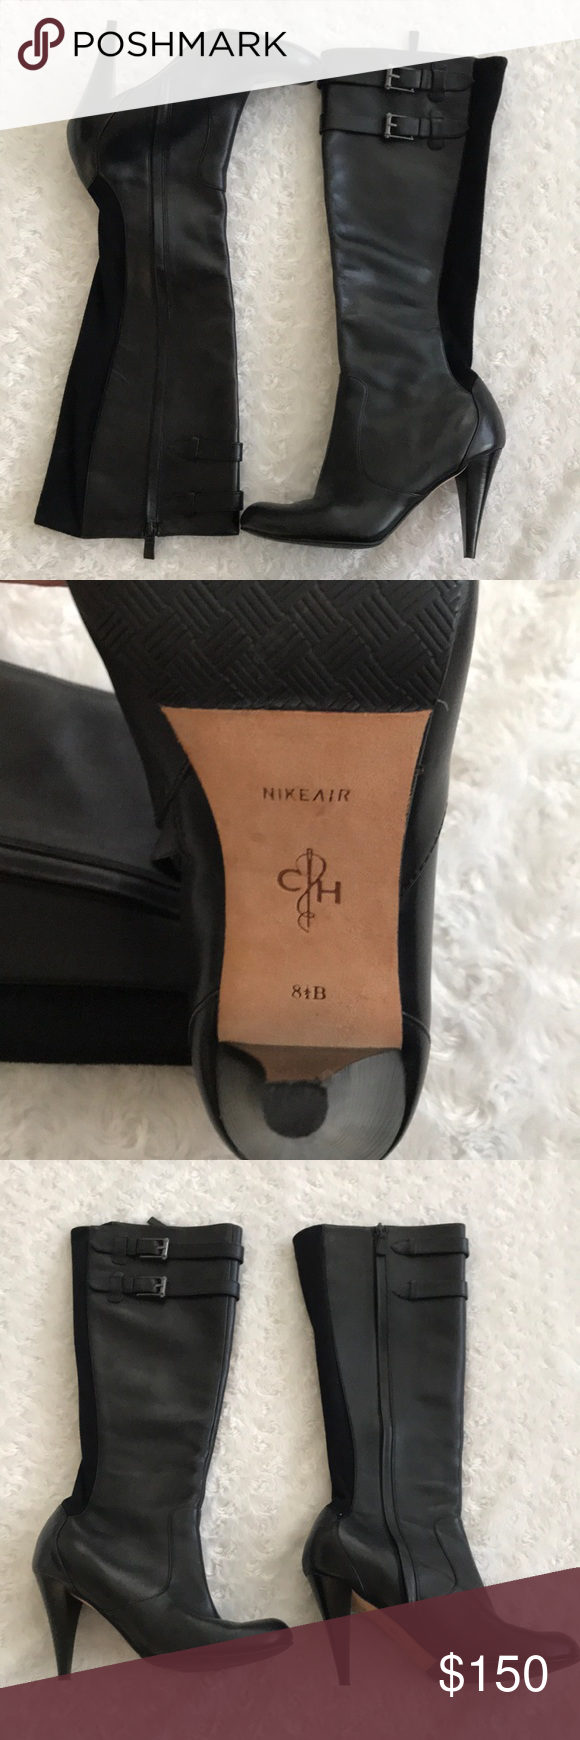 Cole Haan Nike Air women's boots! 8 1/2